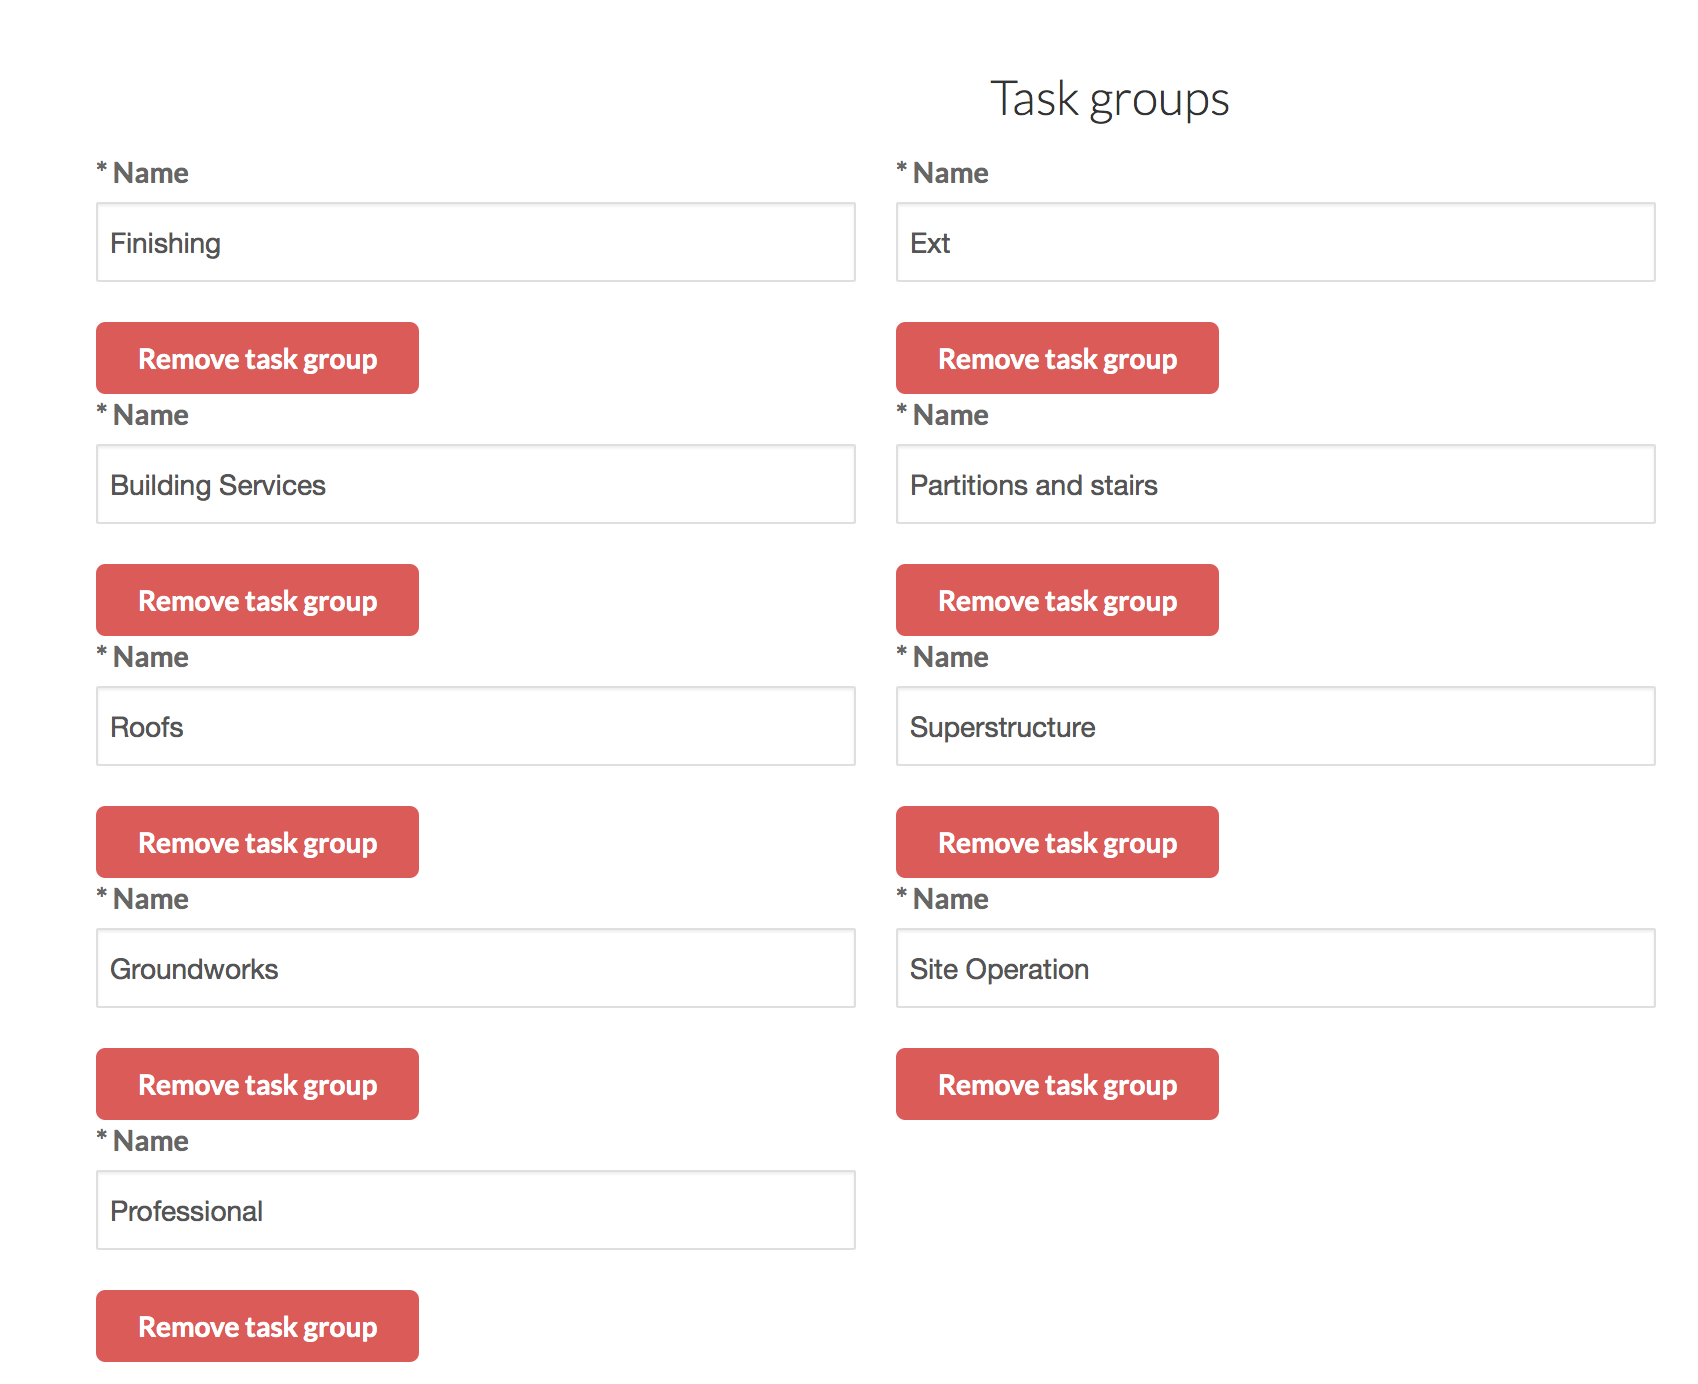 Different task groups can be created in ManagePlaces